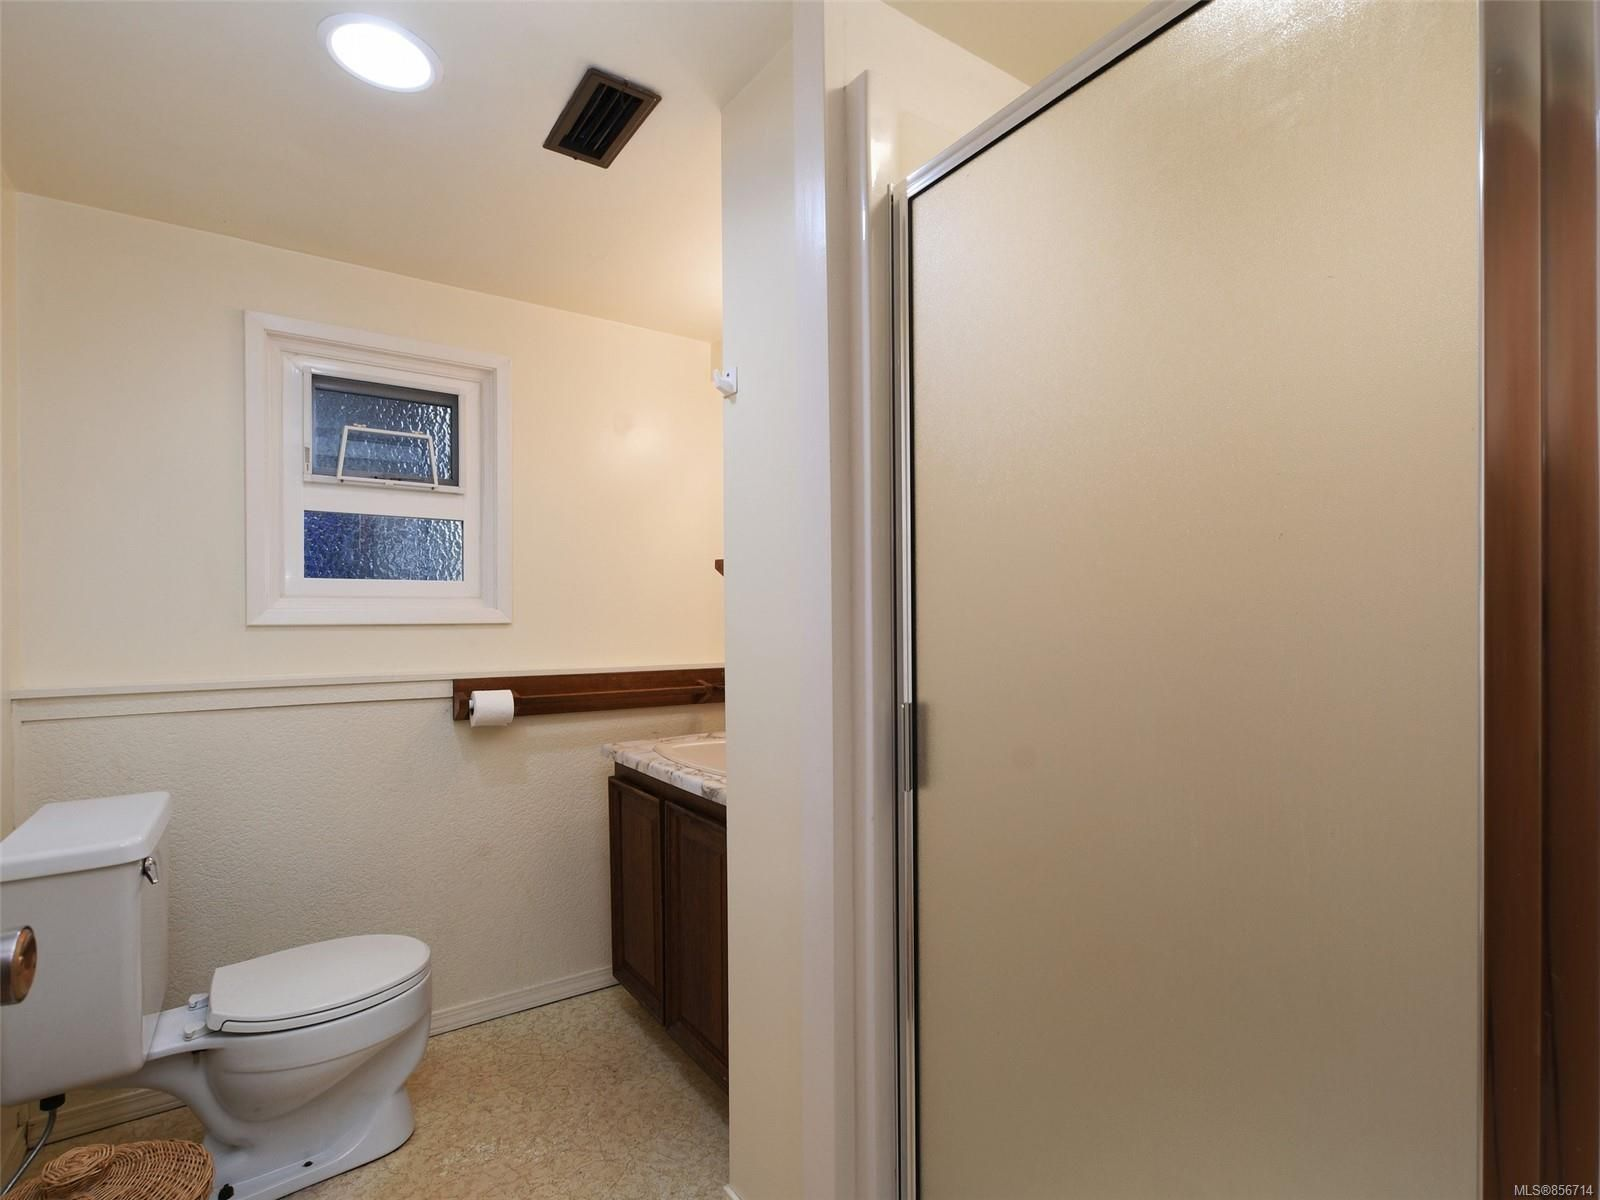 Photo 18: Photos: 3909 Ansell Rd in : SE Mt Tolmie House for sale (Saanich East)  : MLS®# 856714